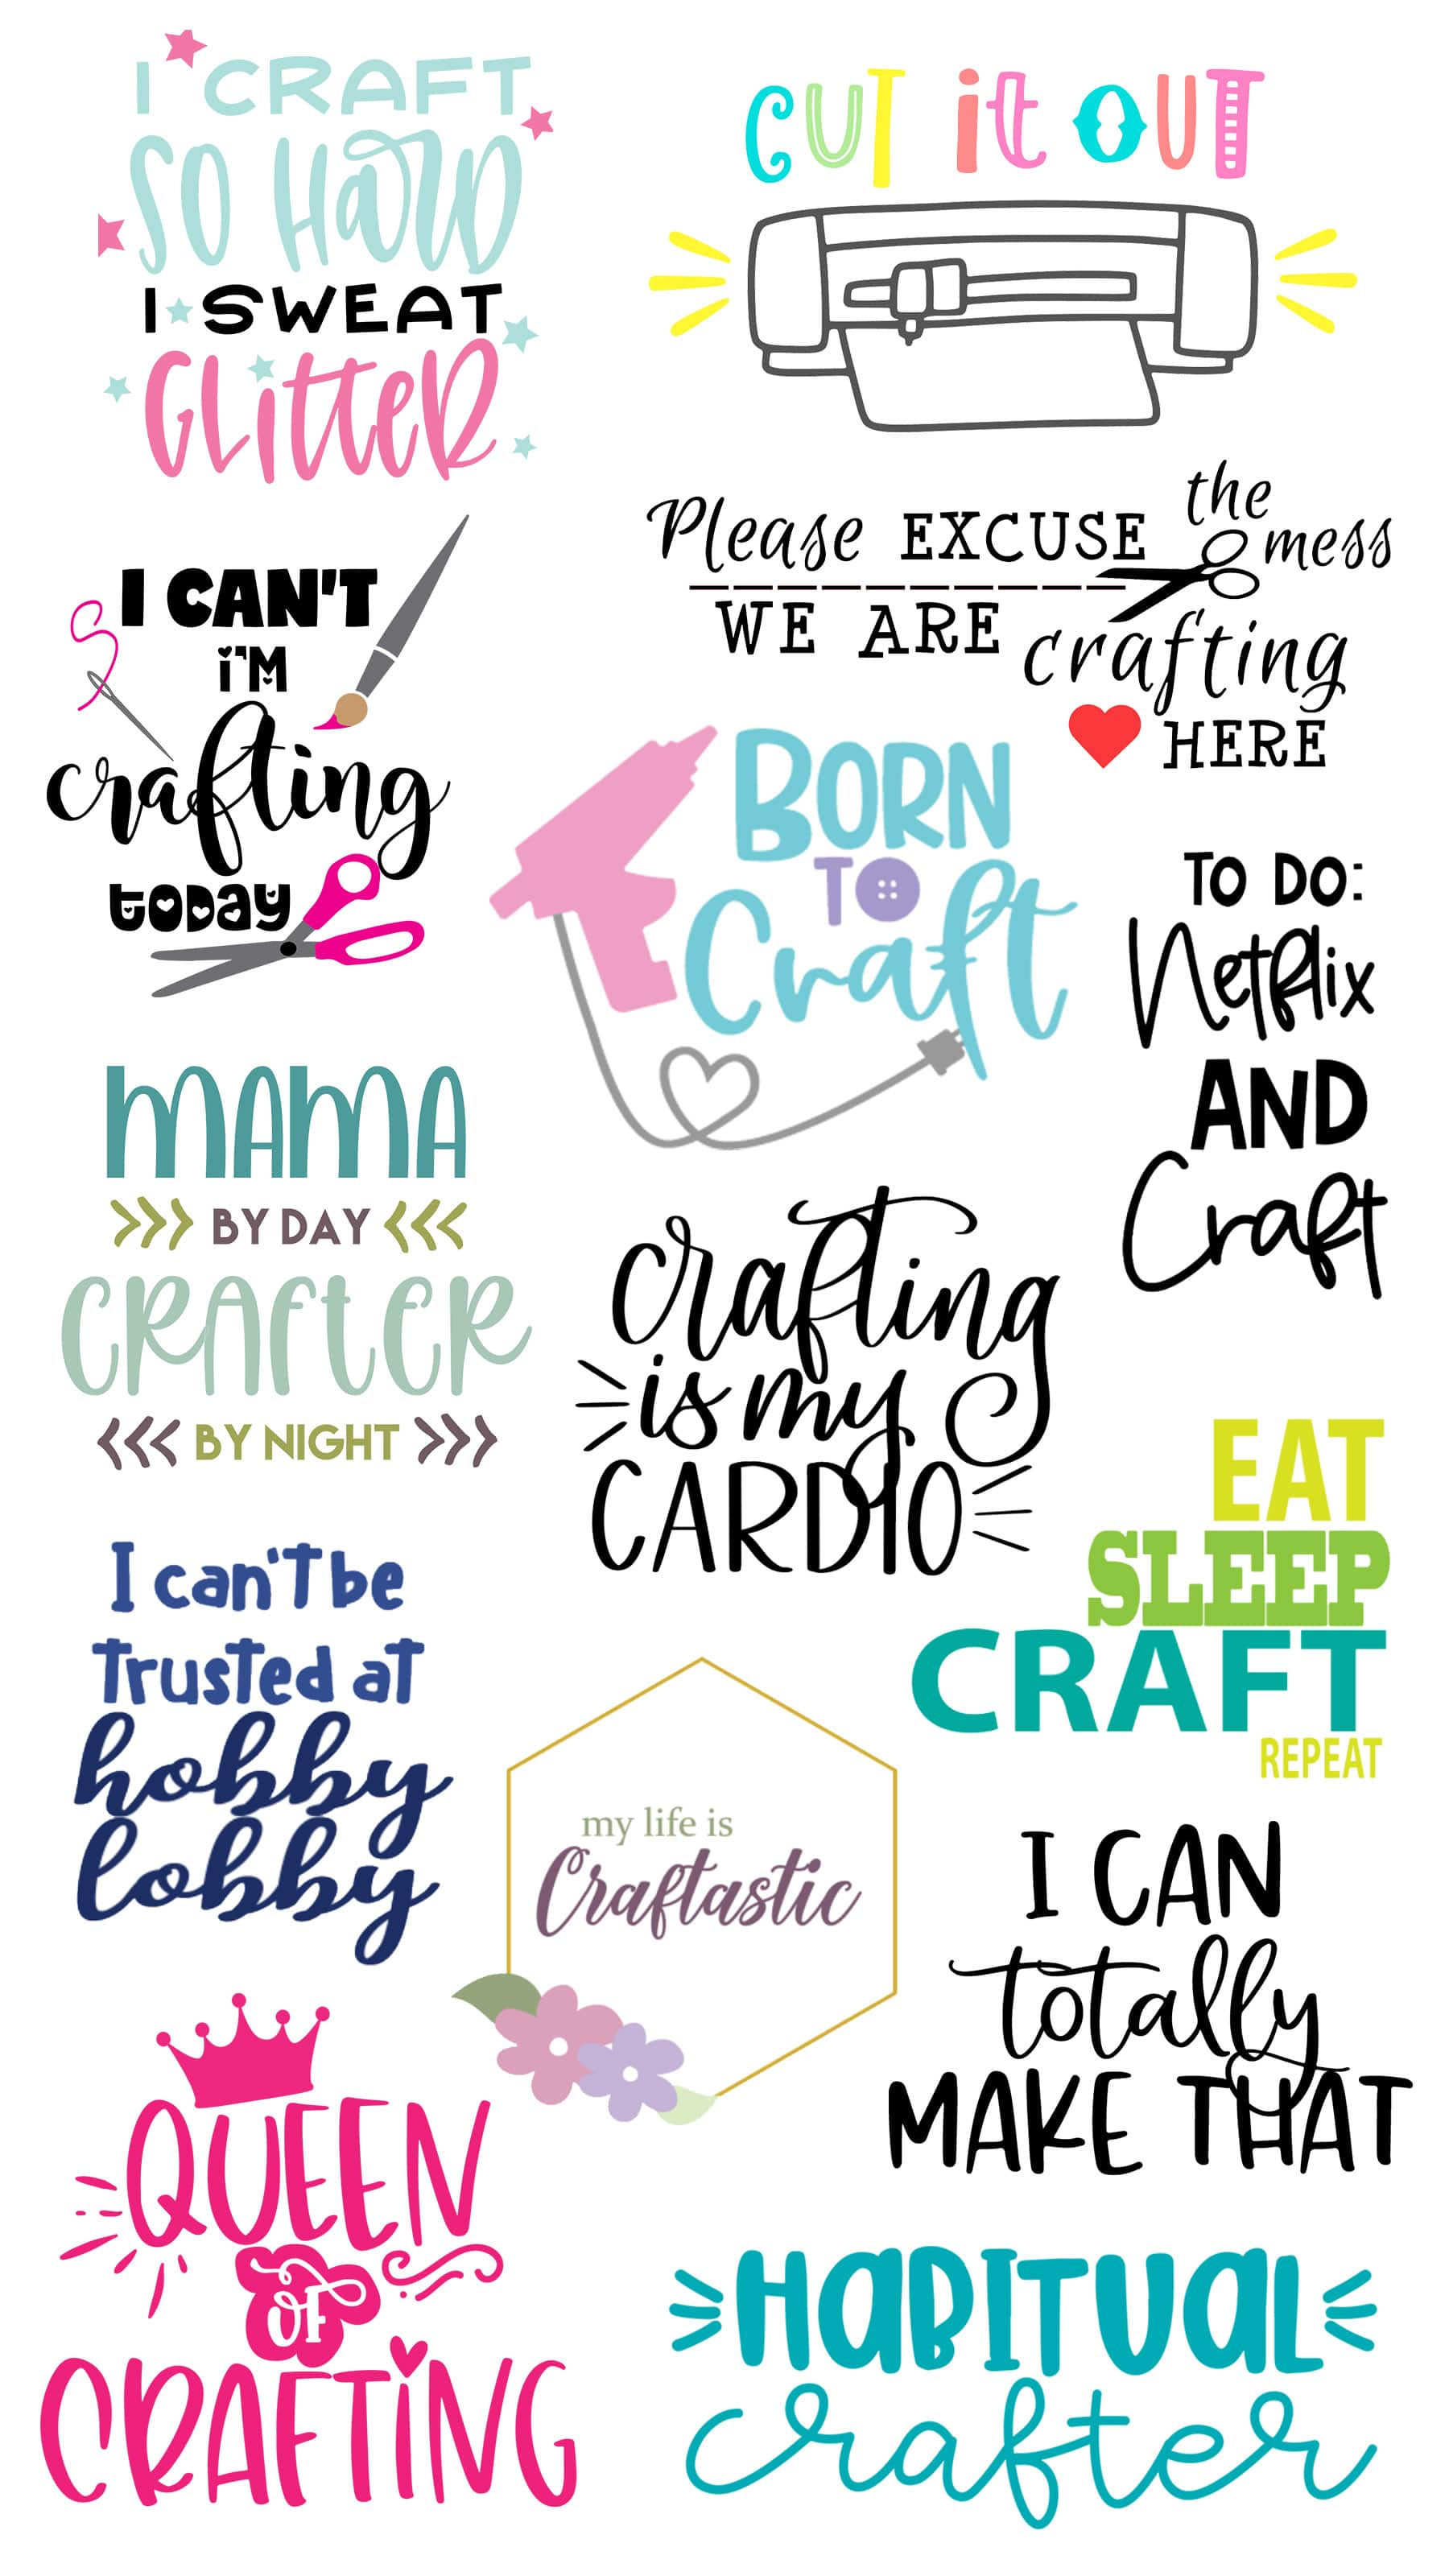 Check out this huge list of free craft svg files for making crafty themed shirts, totes and pretty much anything. Makes a great gift for the crafter in your life. Free crafting svg files have many uses.